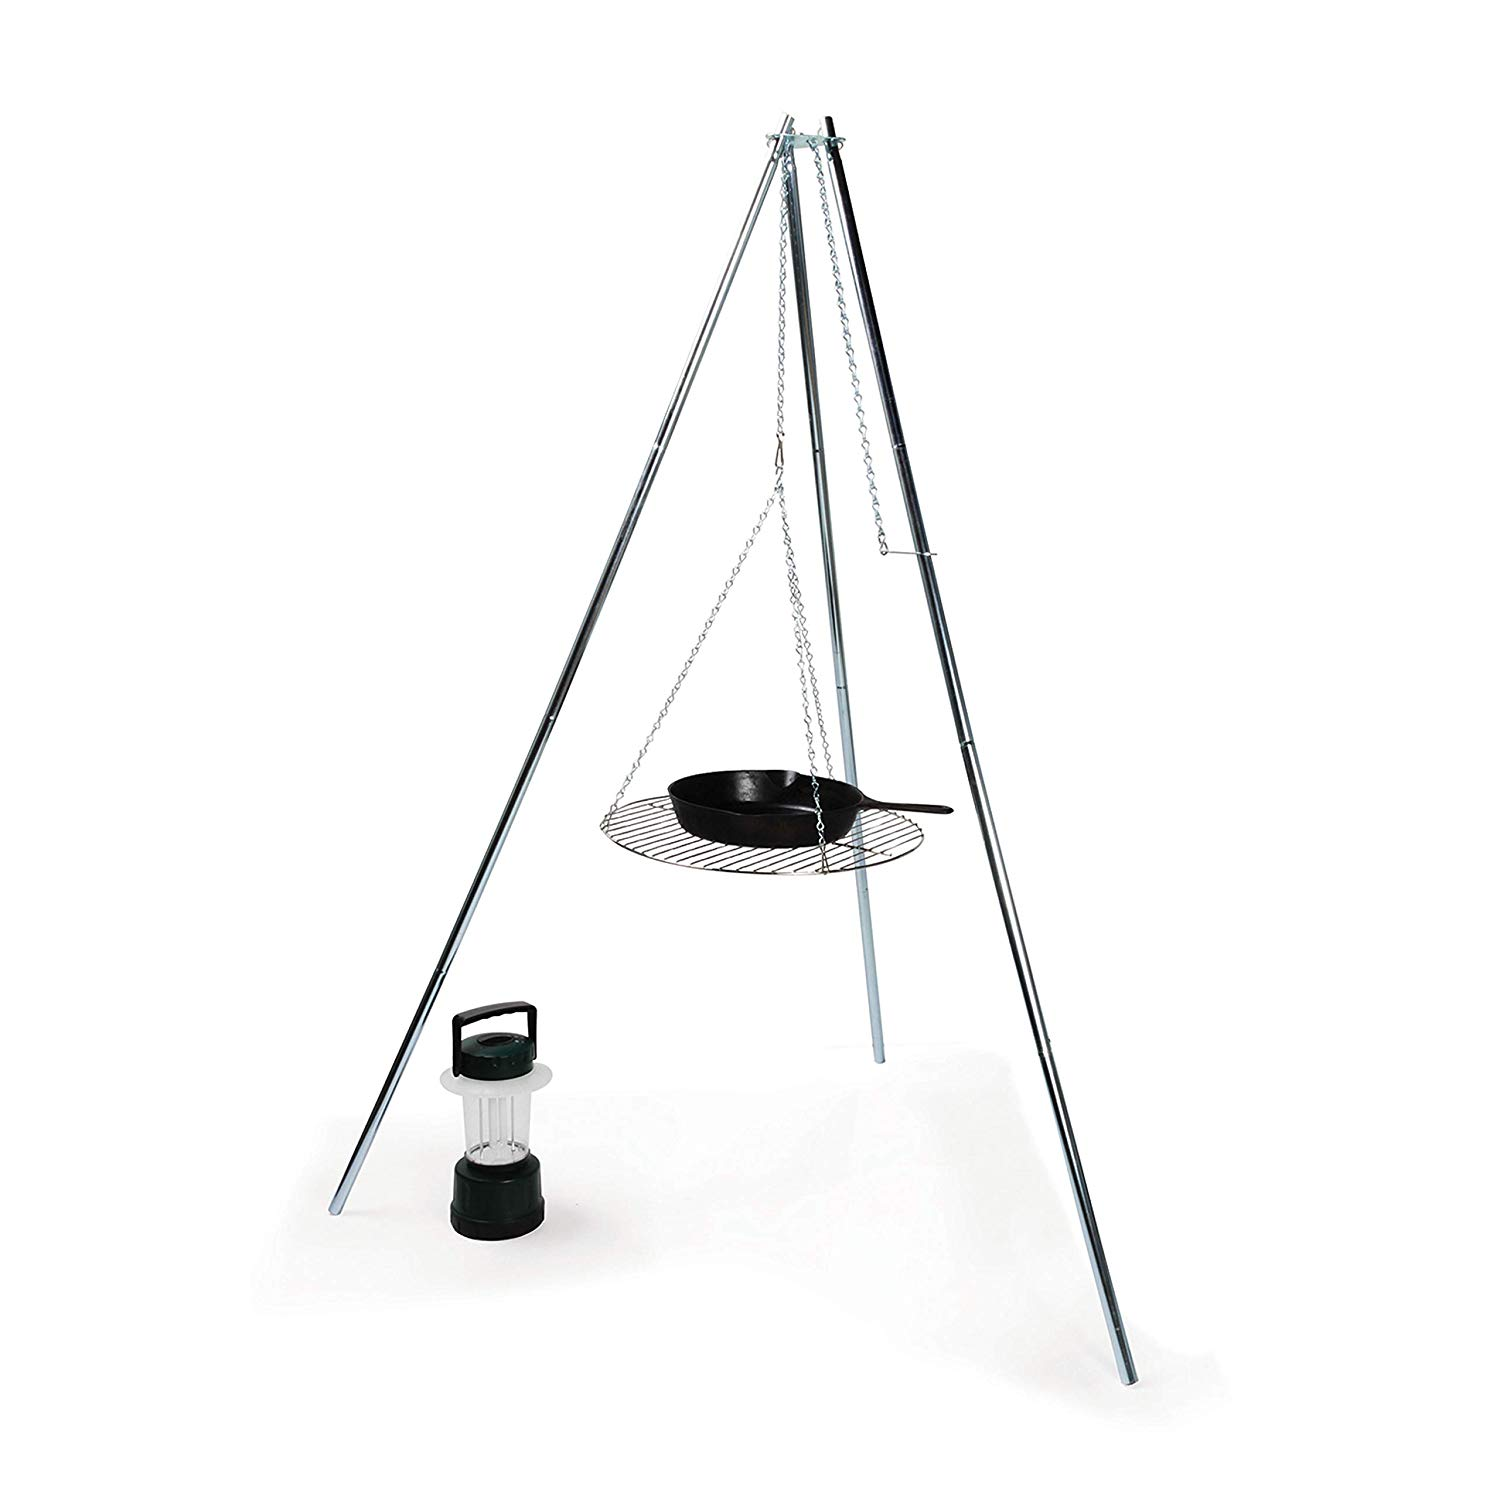 Top 10 Best Campfire Tripods For Camping 2020 Reviews 6